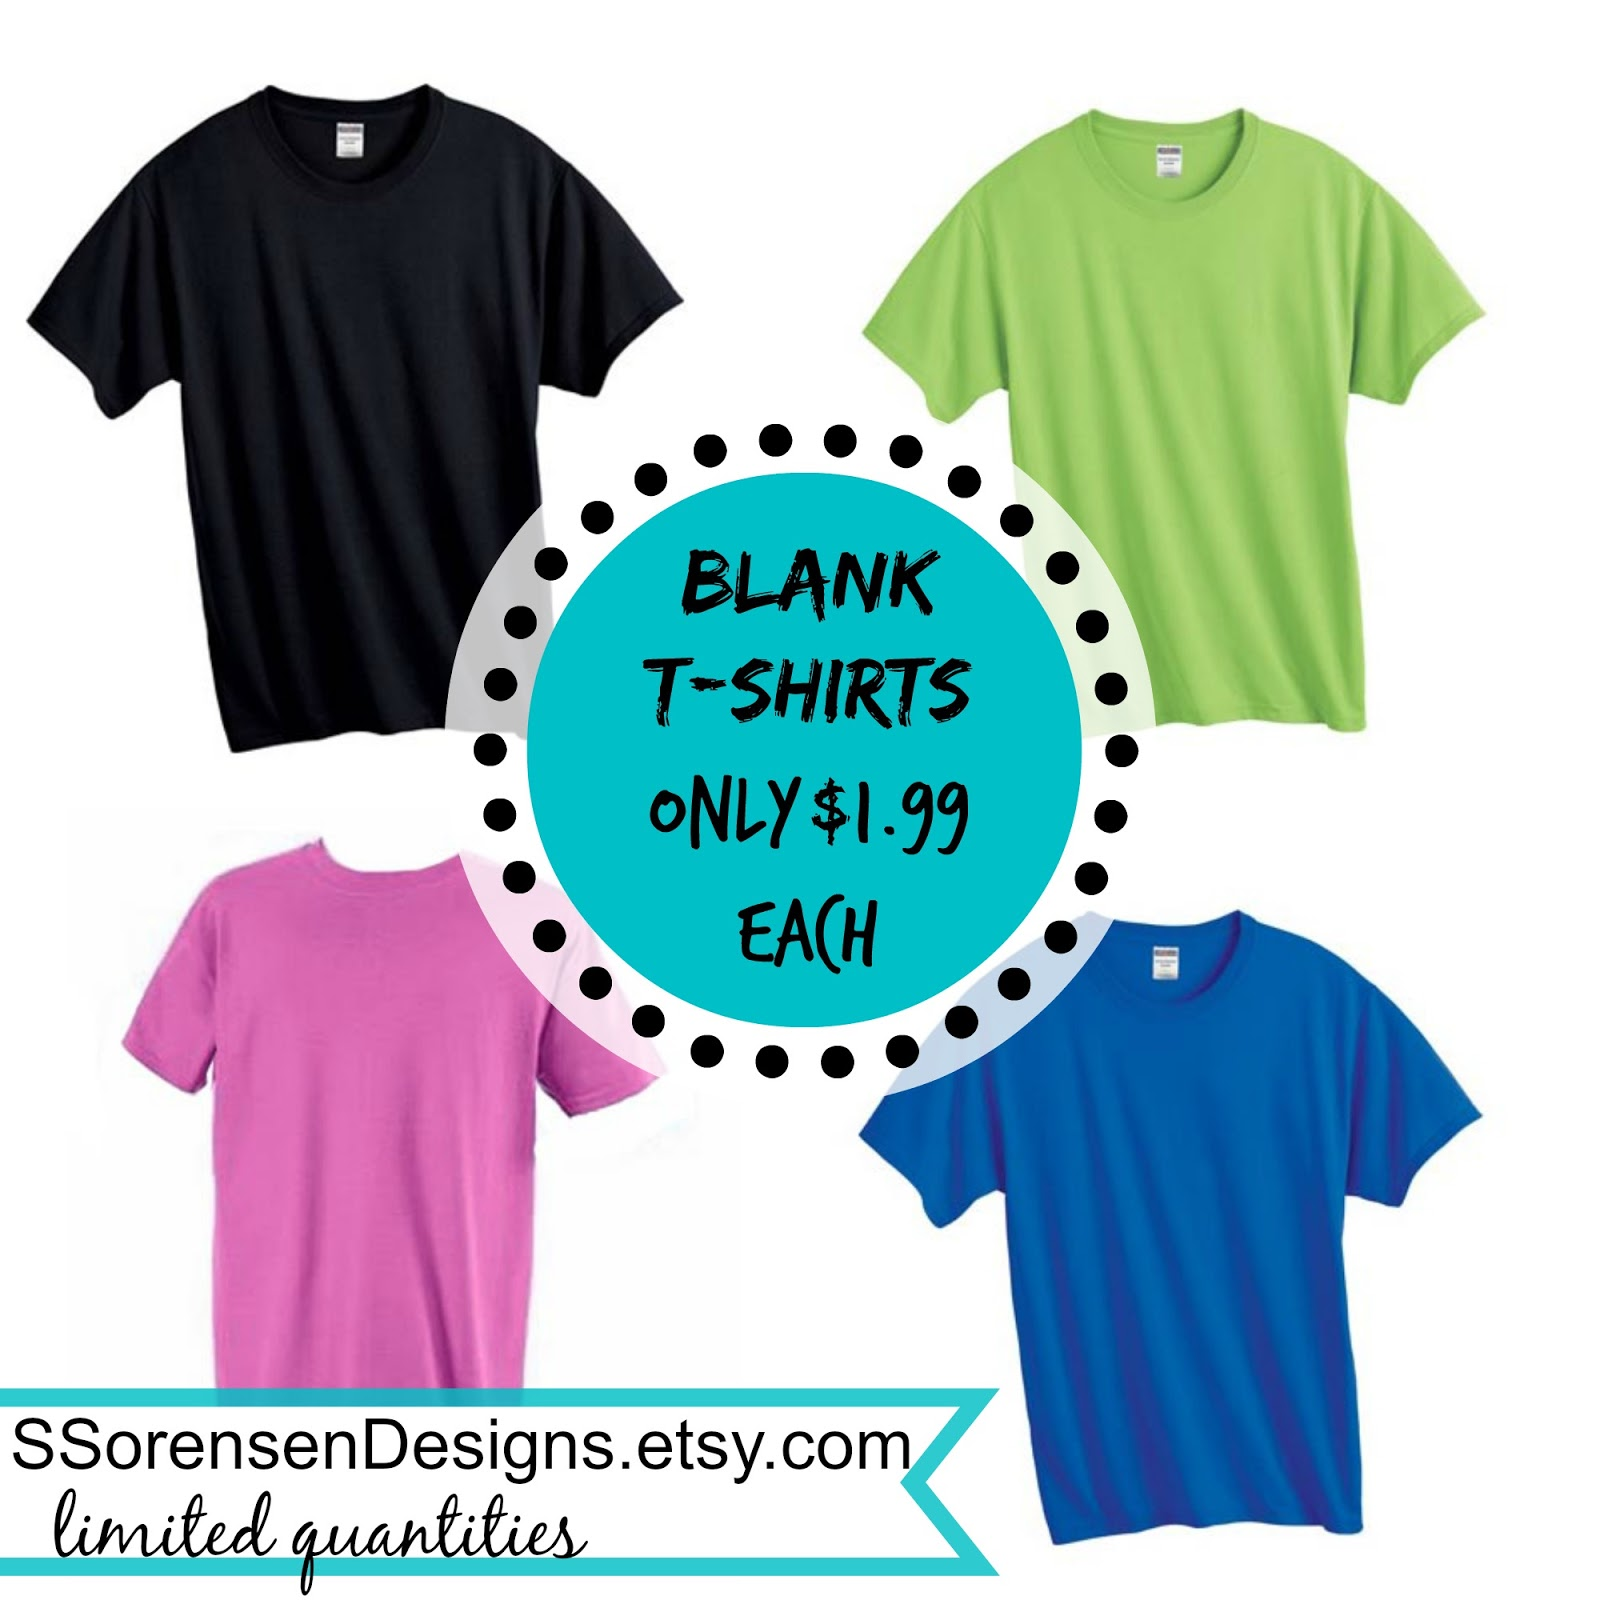 sale plain t-shirts mens womens black blue green